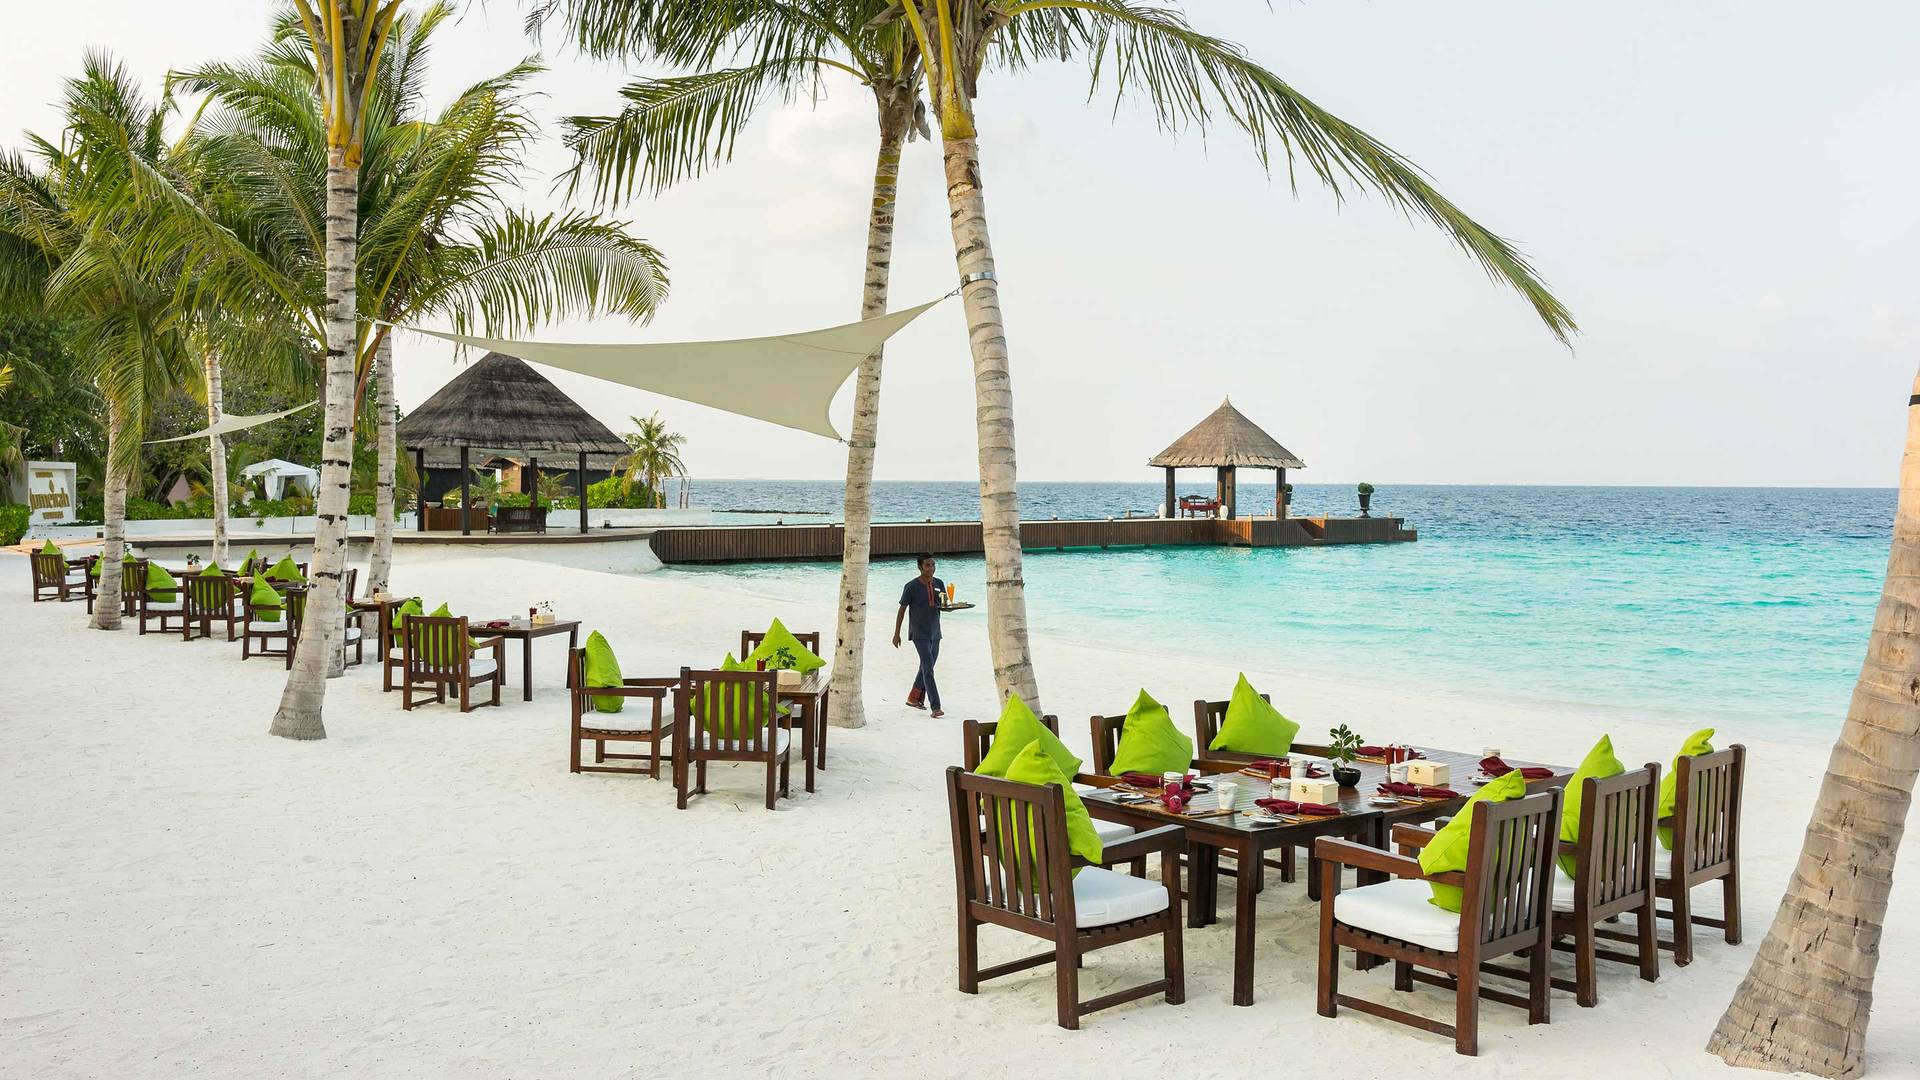 Jumeirah Vittaveli restaurant on the beach